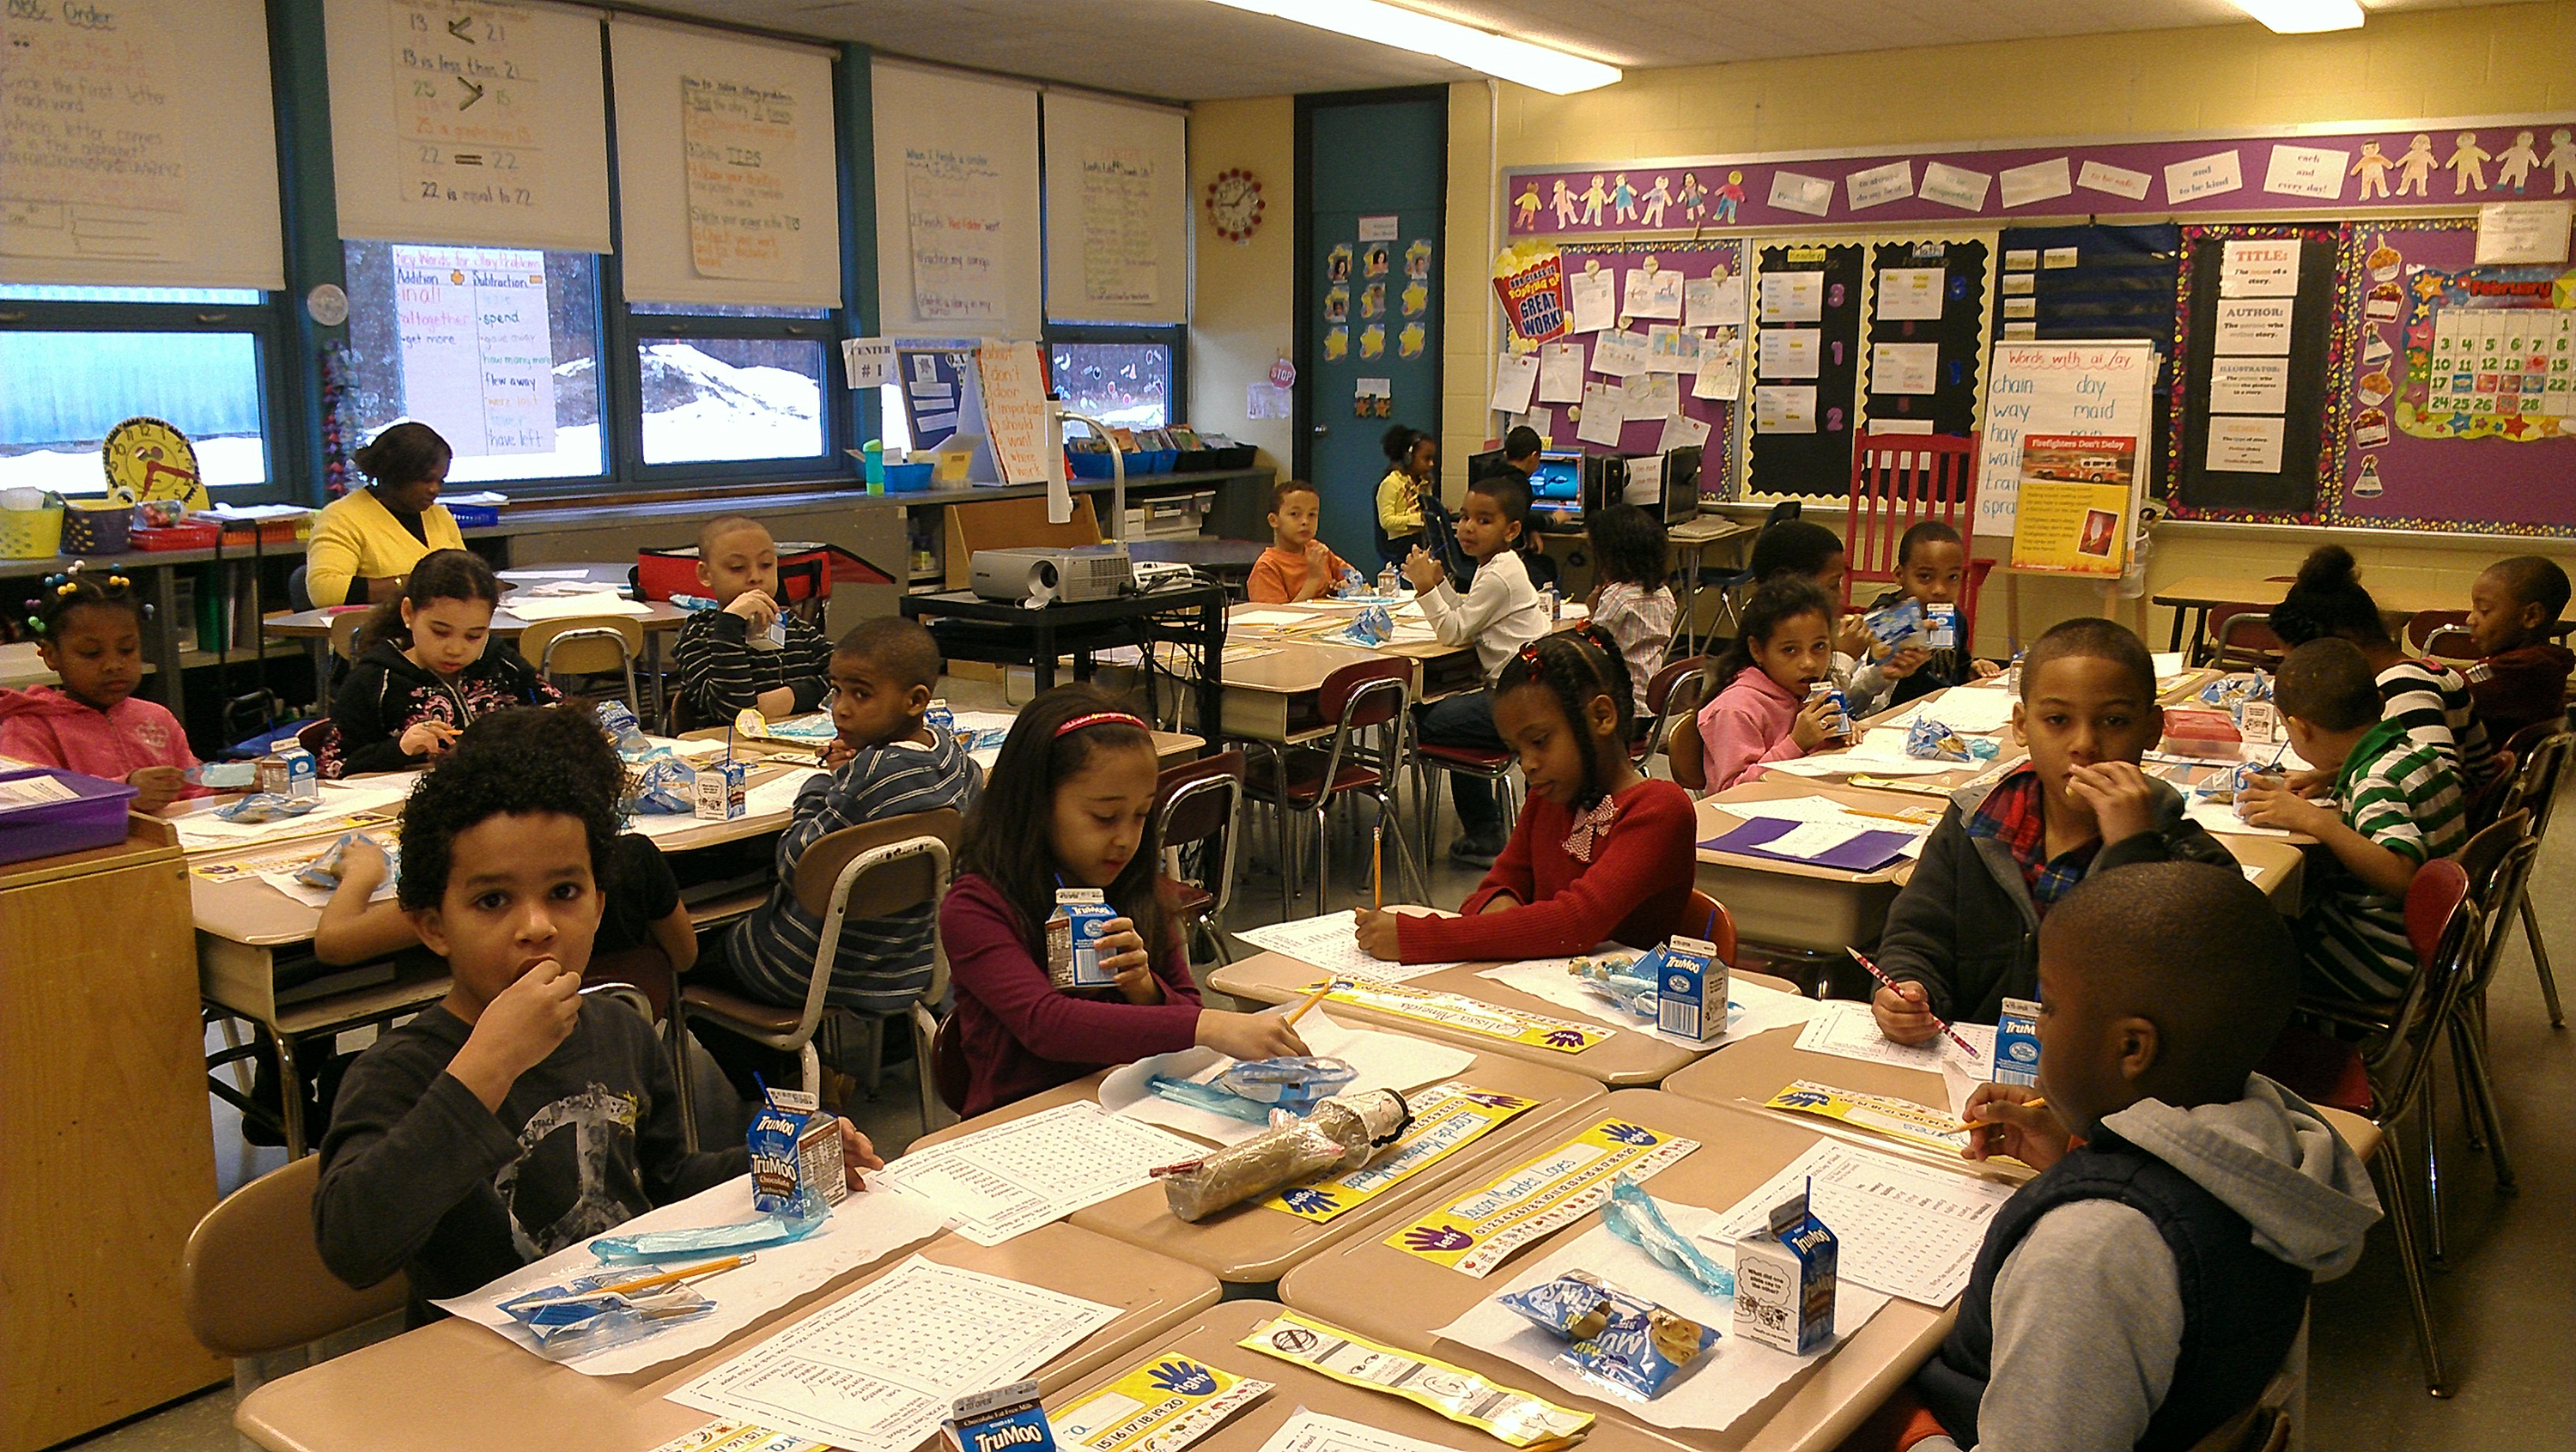 Healthy meals served in a Brockton, Massachusetts classroom